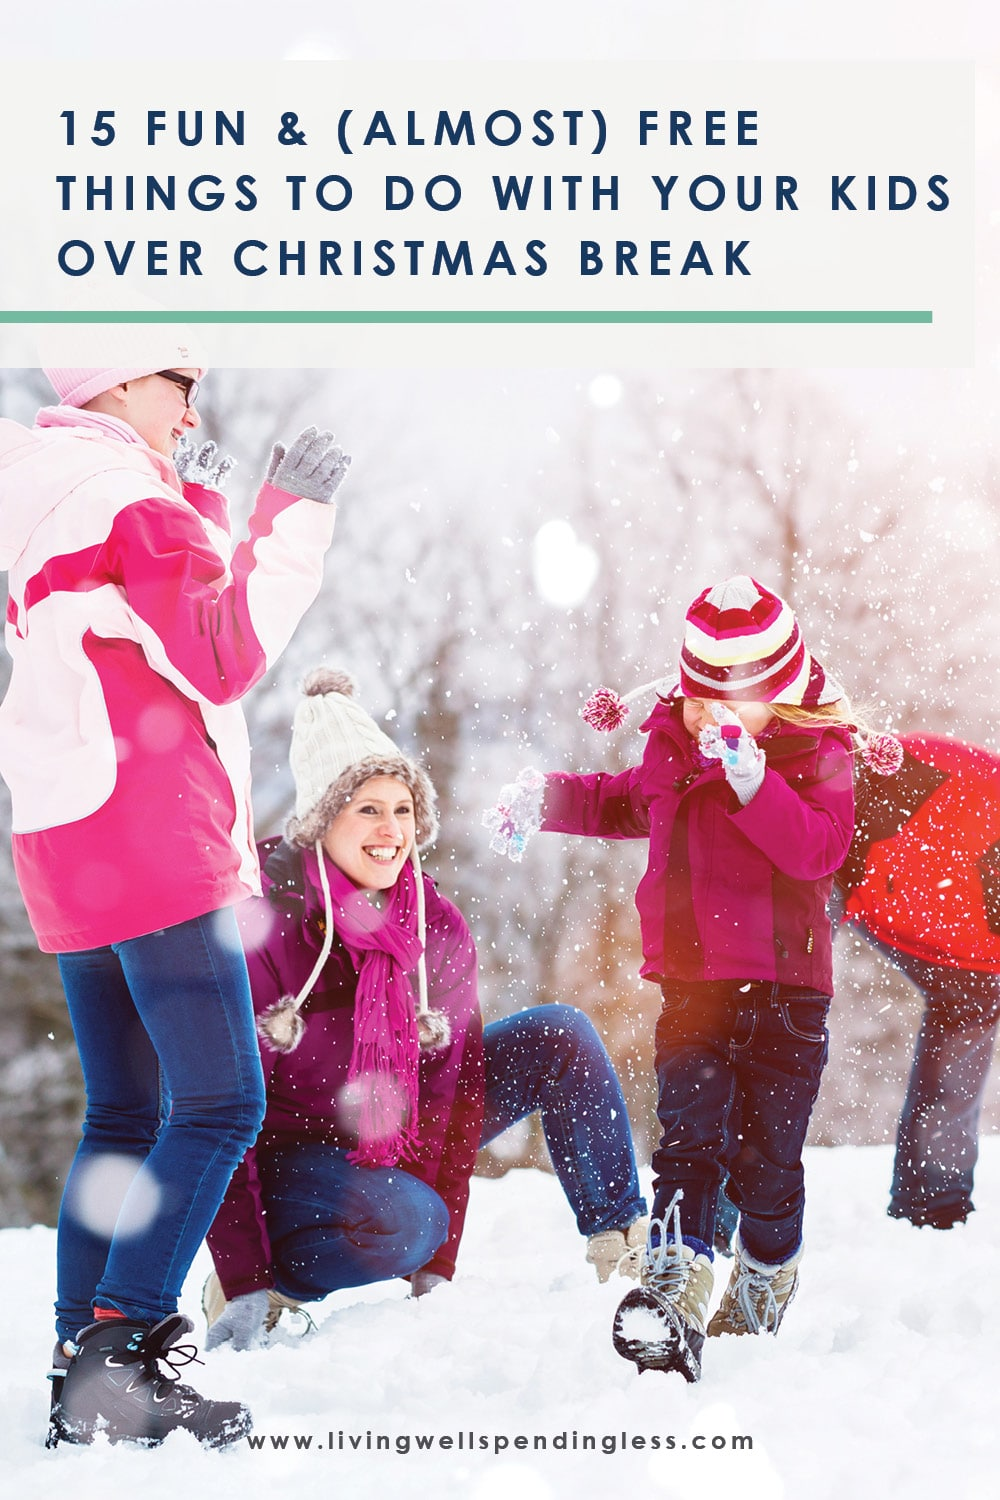 Wondering what to do with your kids over winter and Christmas break? Here are 15 fun things to do with your kids over winter break (or any time). #holidays #familyactivities #parenting #christmas #christmasbreak #noschool #funactivities #freeactivities #cheapactivities